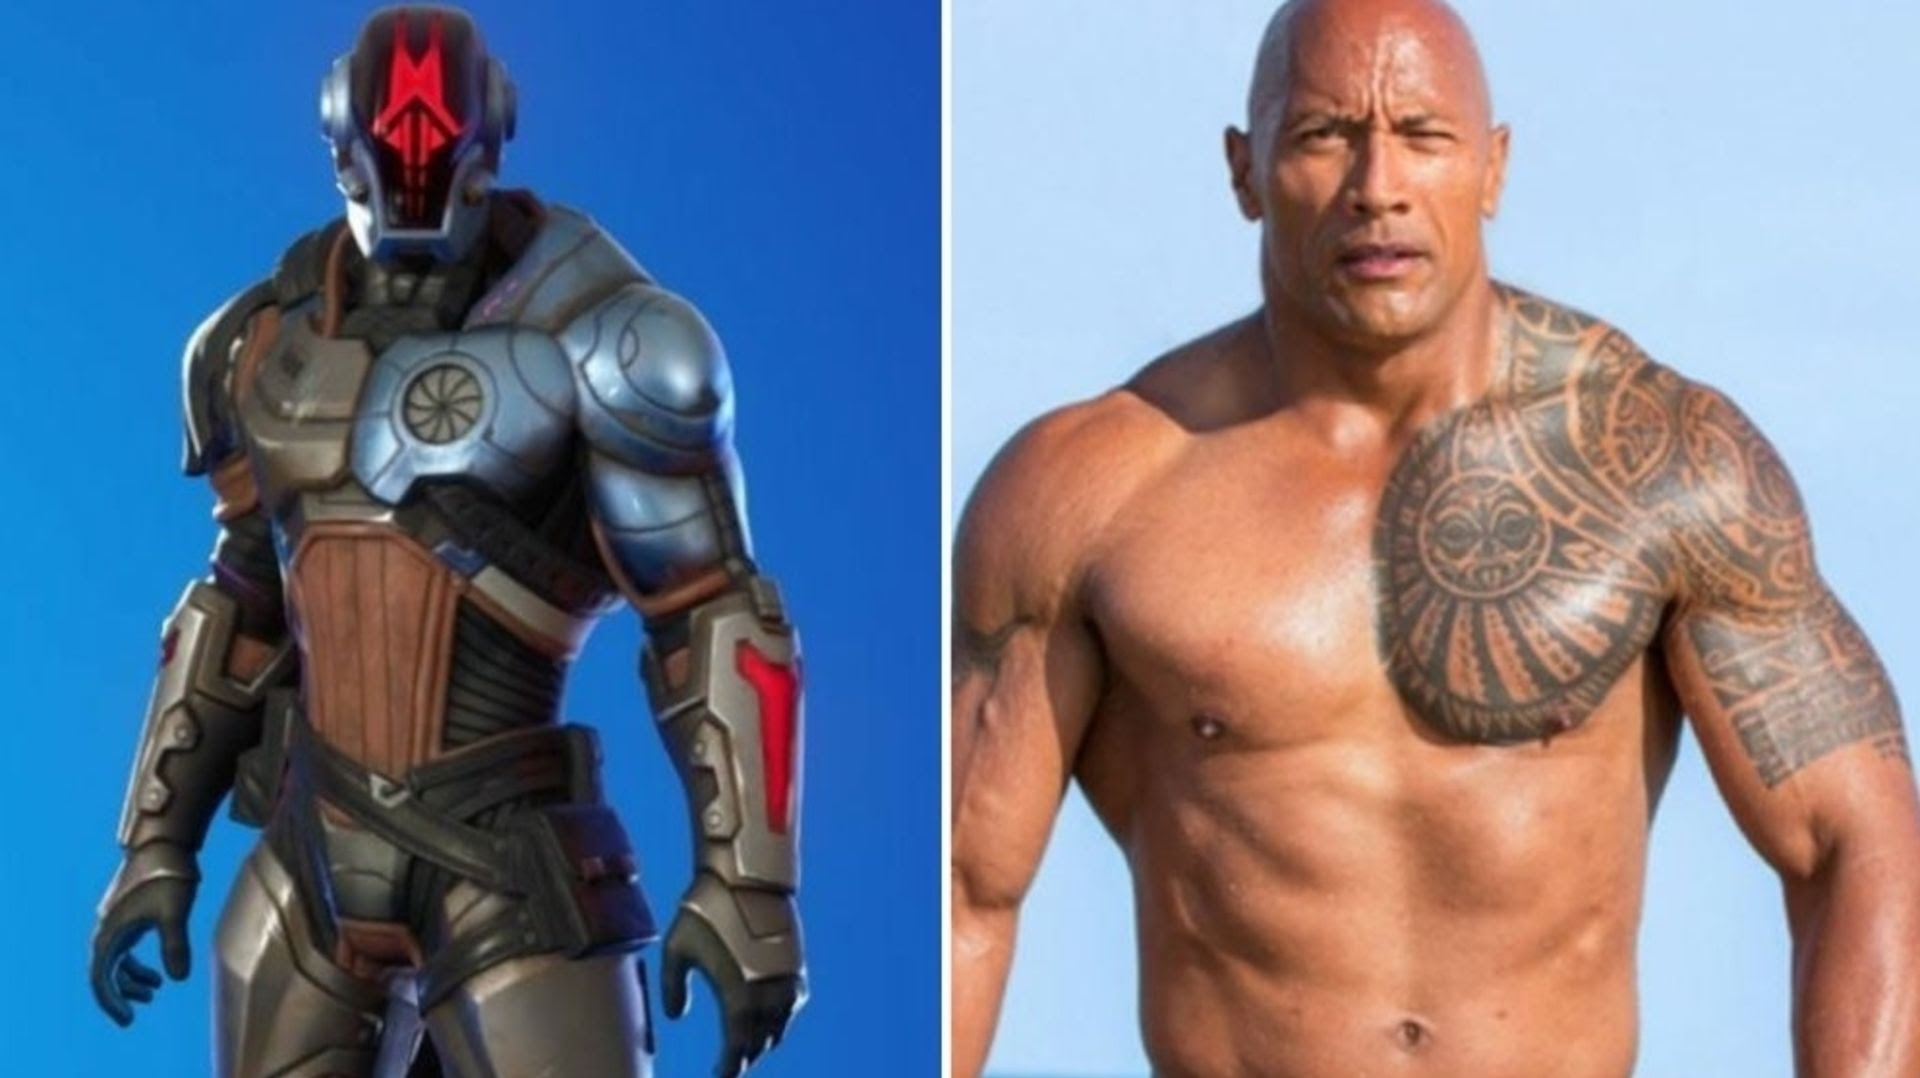 Fortnite fans think its major new character is secretly being played by The Rock